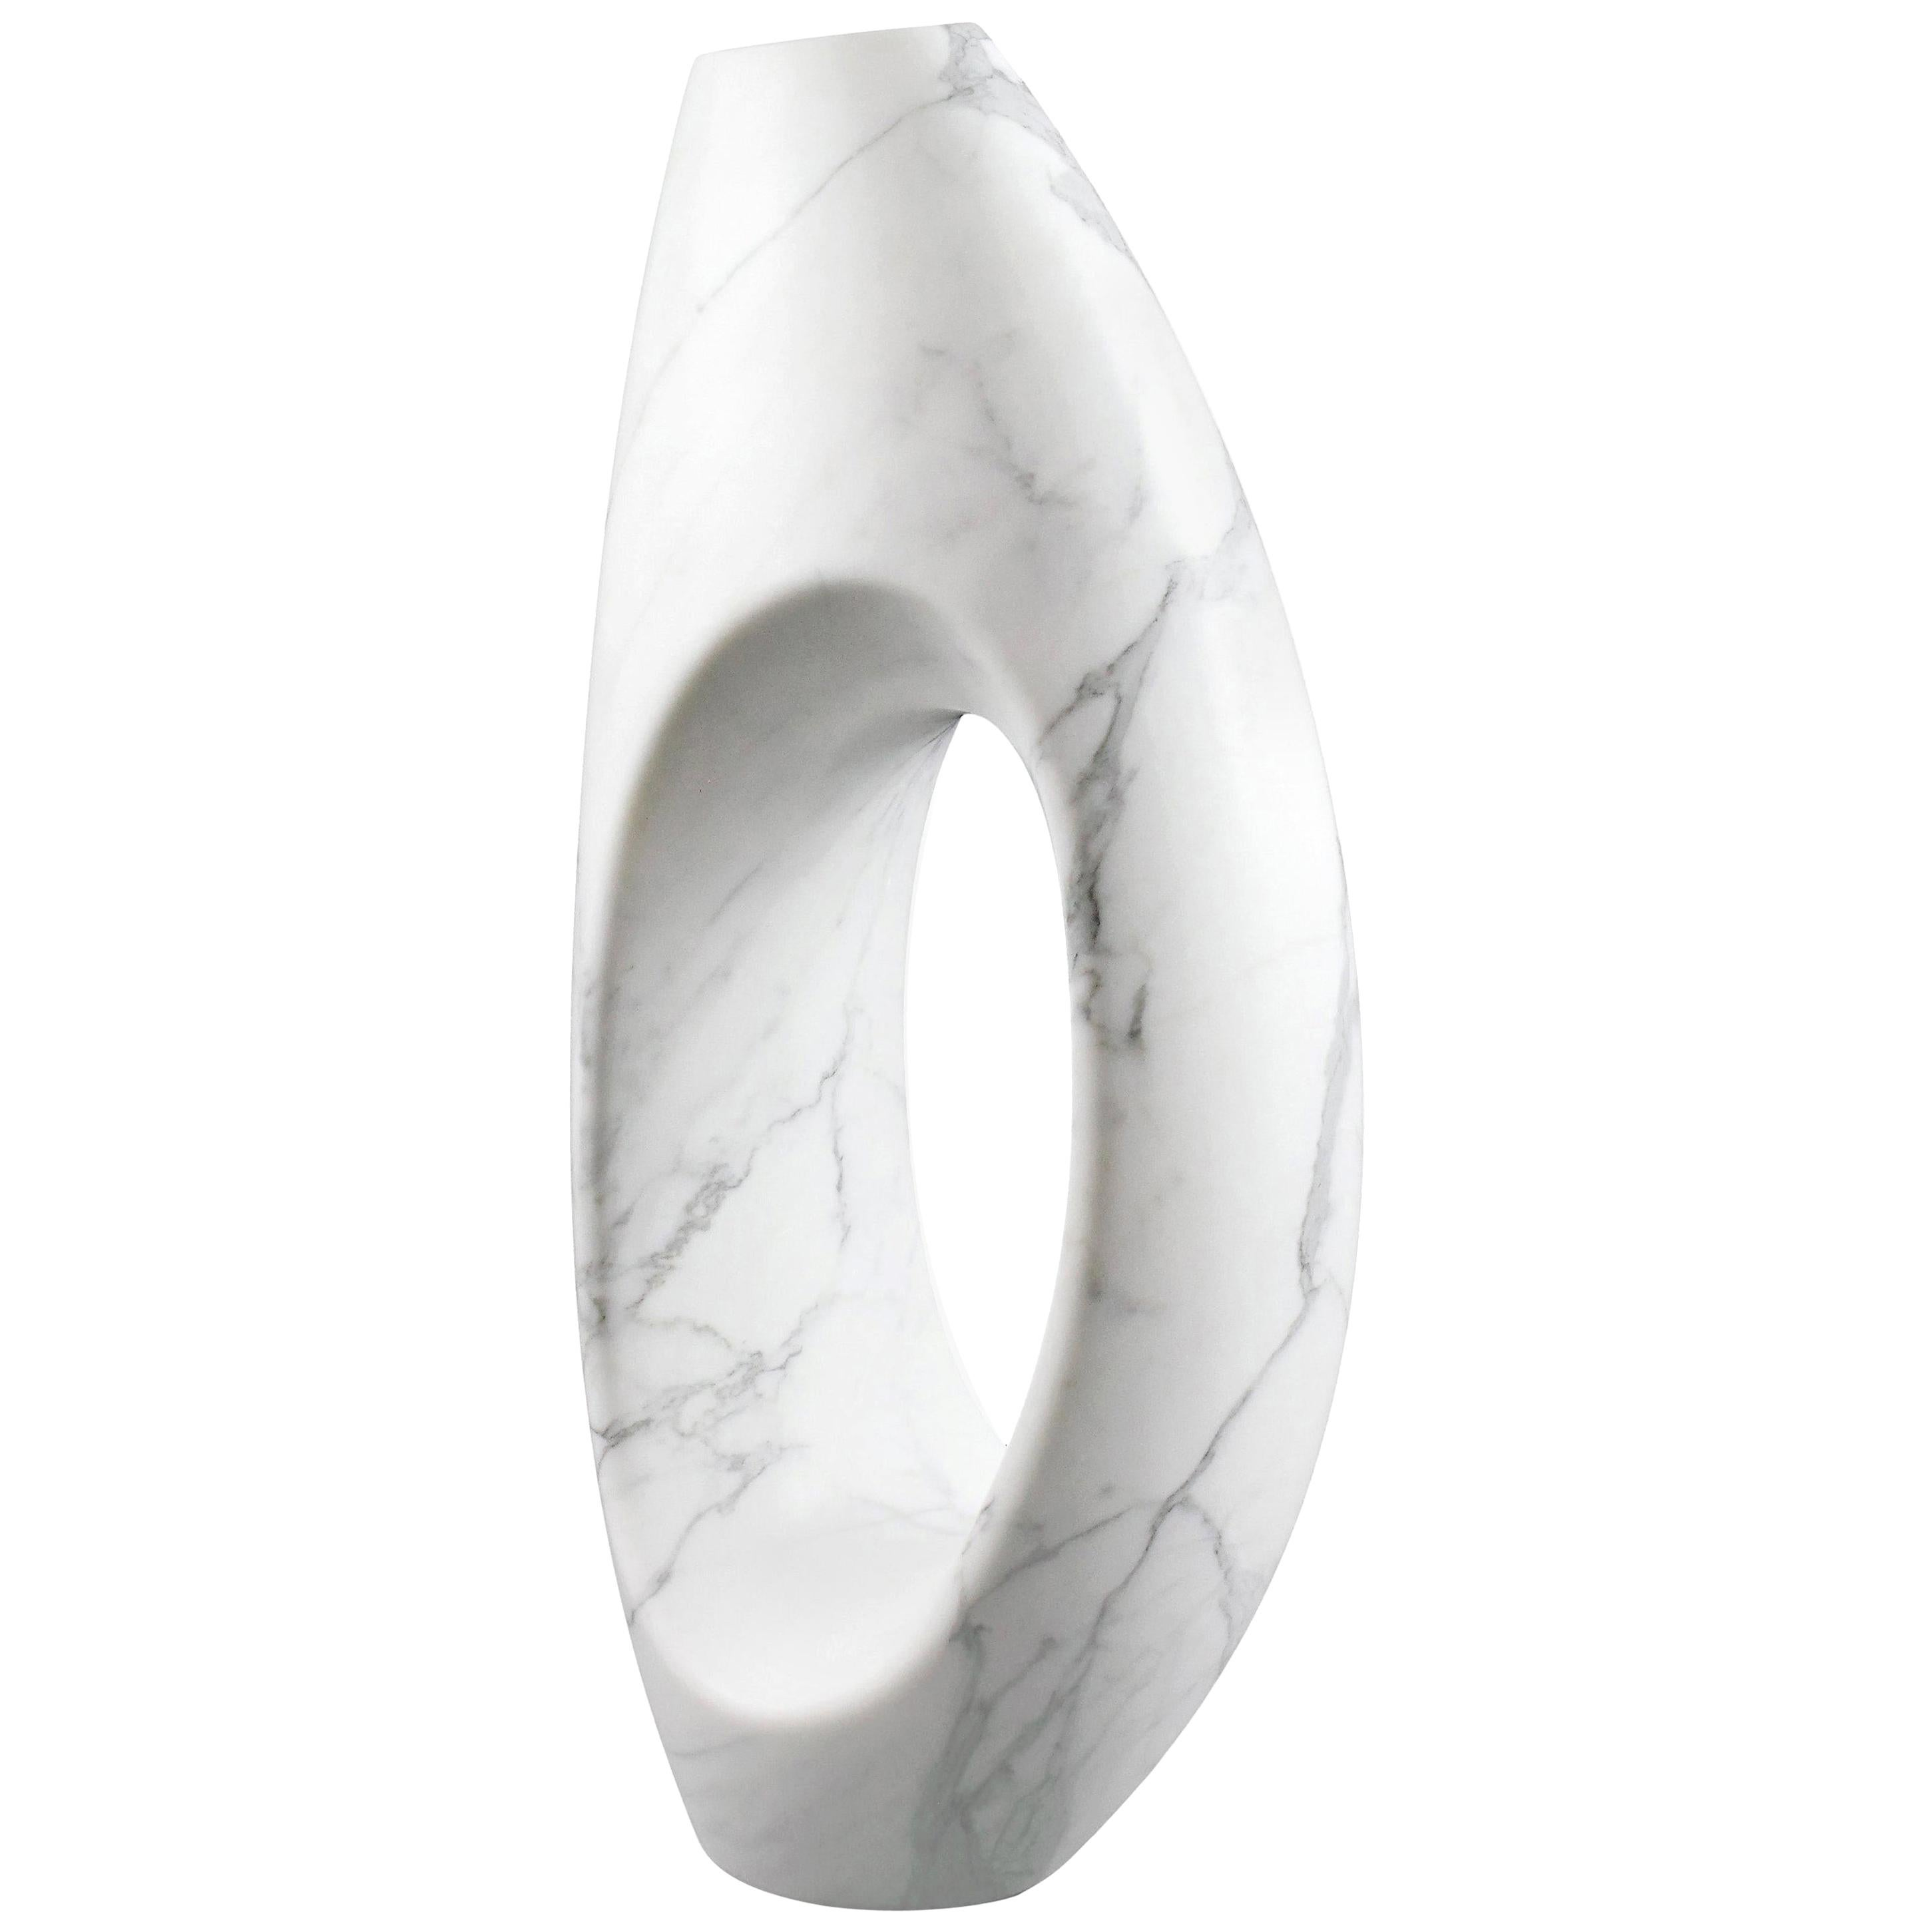 Sculpture Vase White Statuary Marble from Carrara by Pieruga Marble